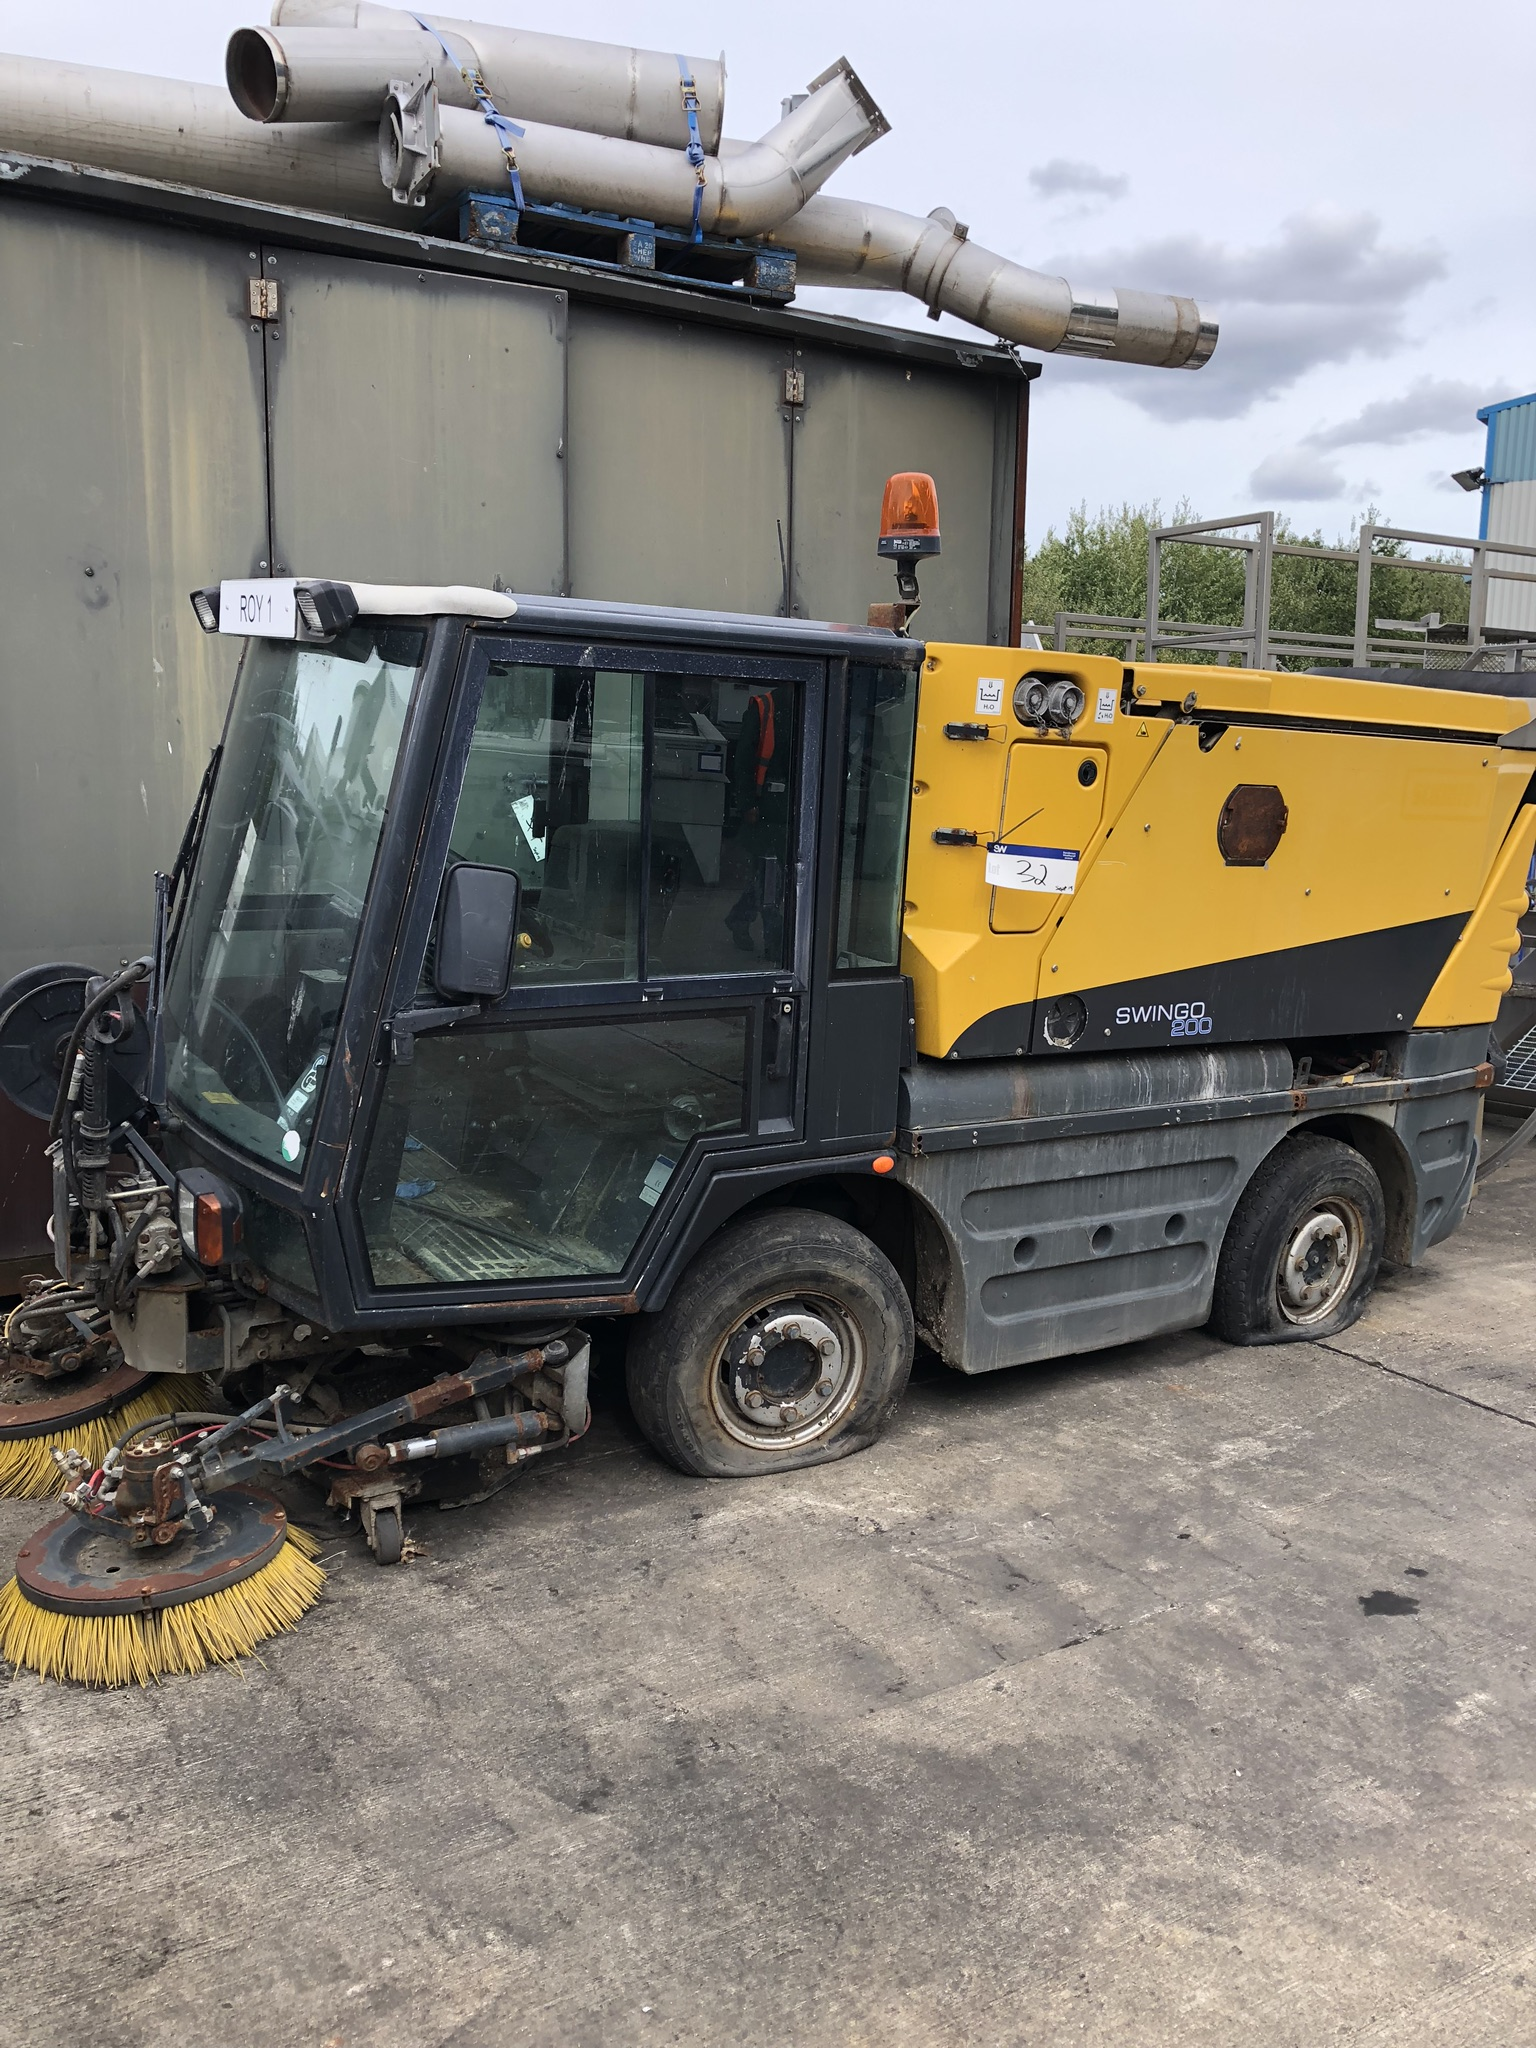 Schmidt Swingo 200 Road Sweeper, registration no. AE10 CFO (understood to require attention - non-